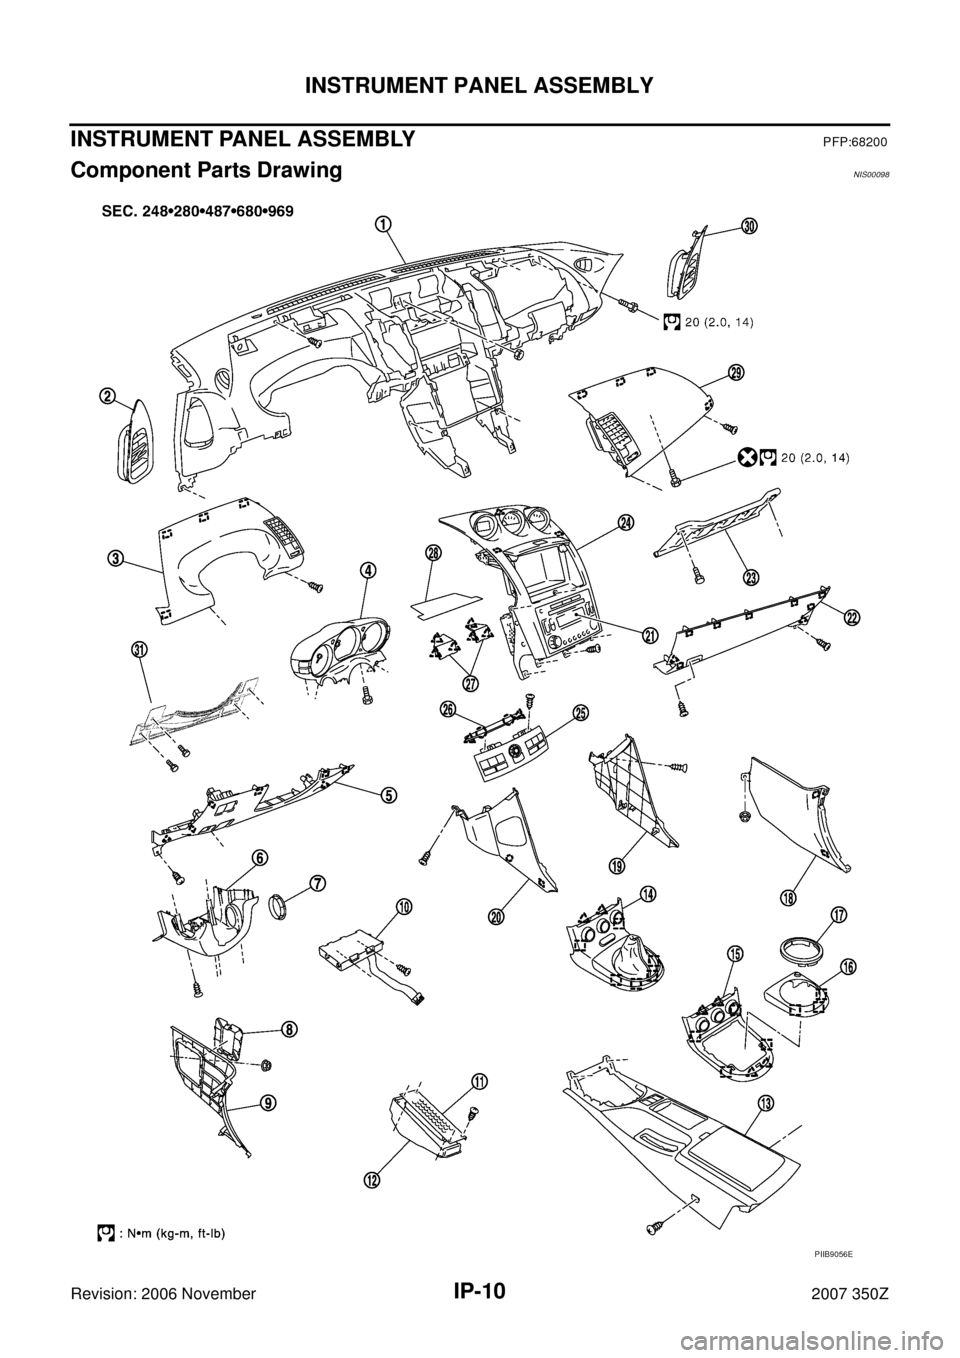 NISSAN 350Z 2007 Z33 Instrument Panel Workshop Manual